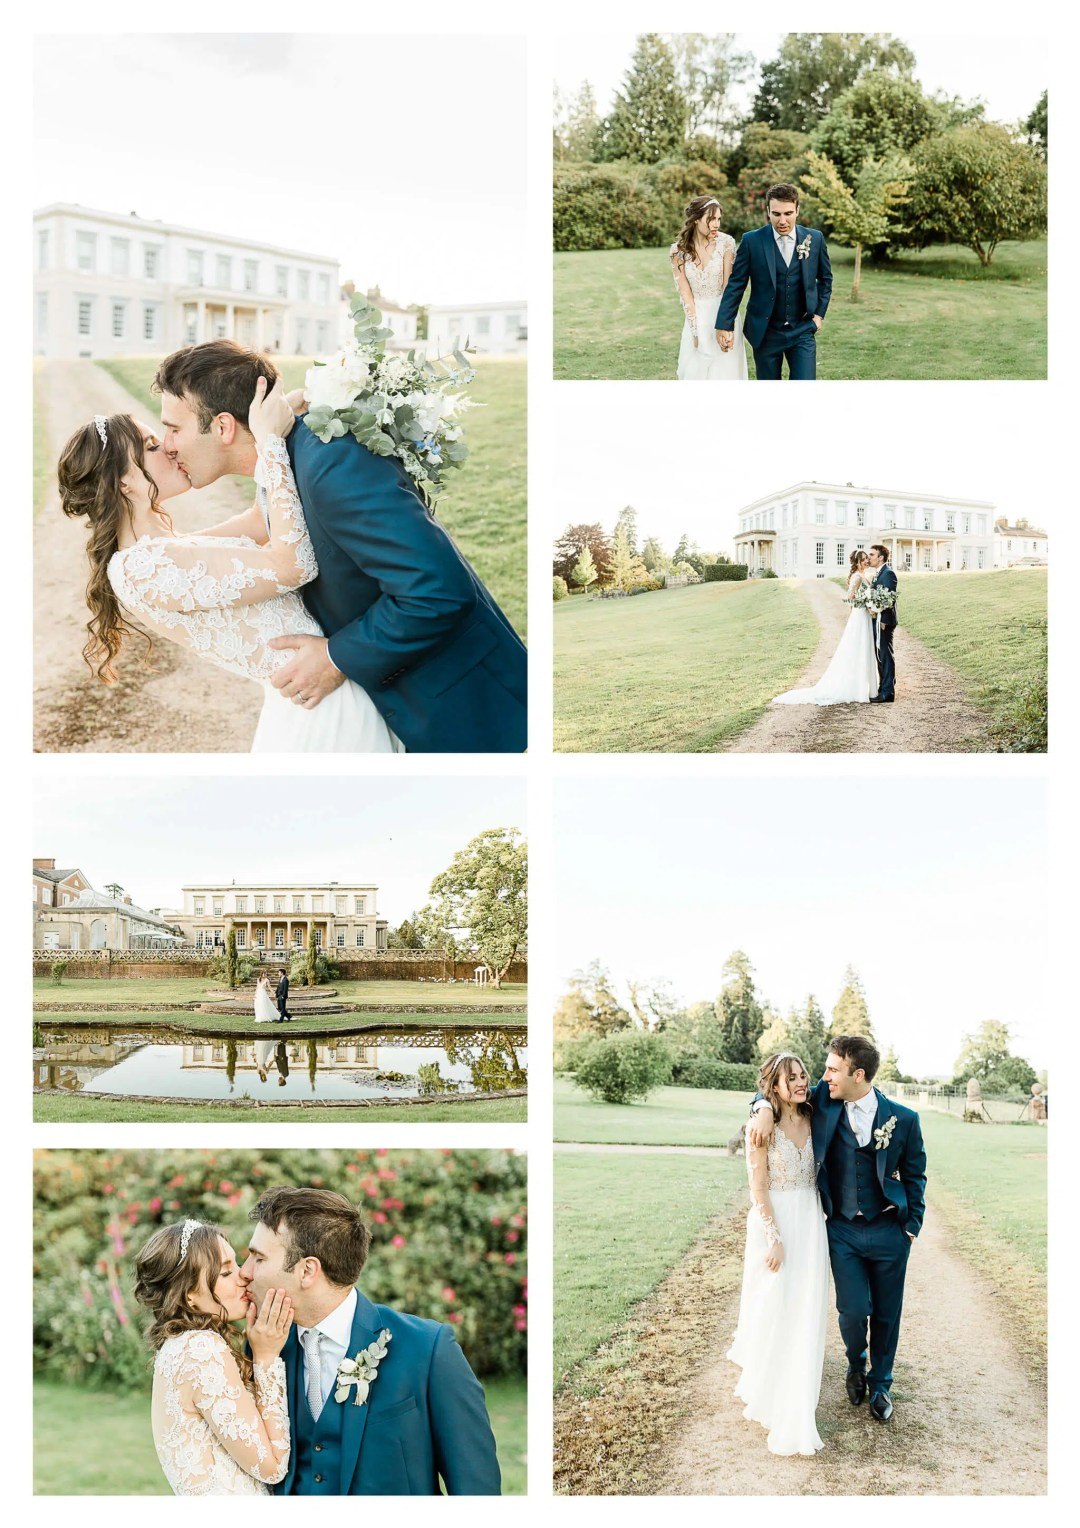 Best Buxted Park Hotel preferred and recommended wedding photographer